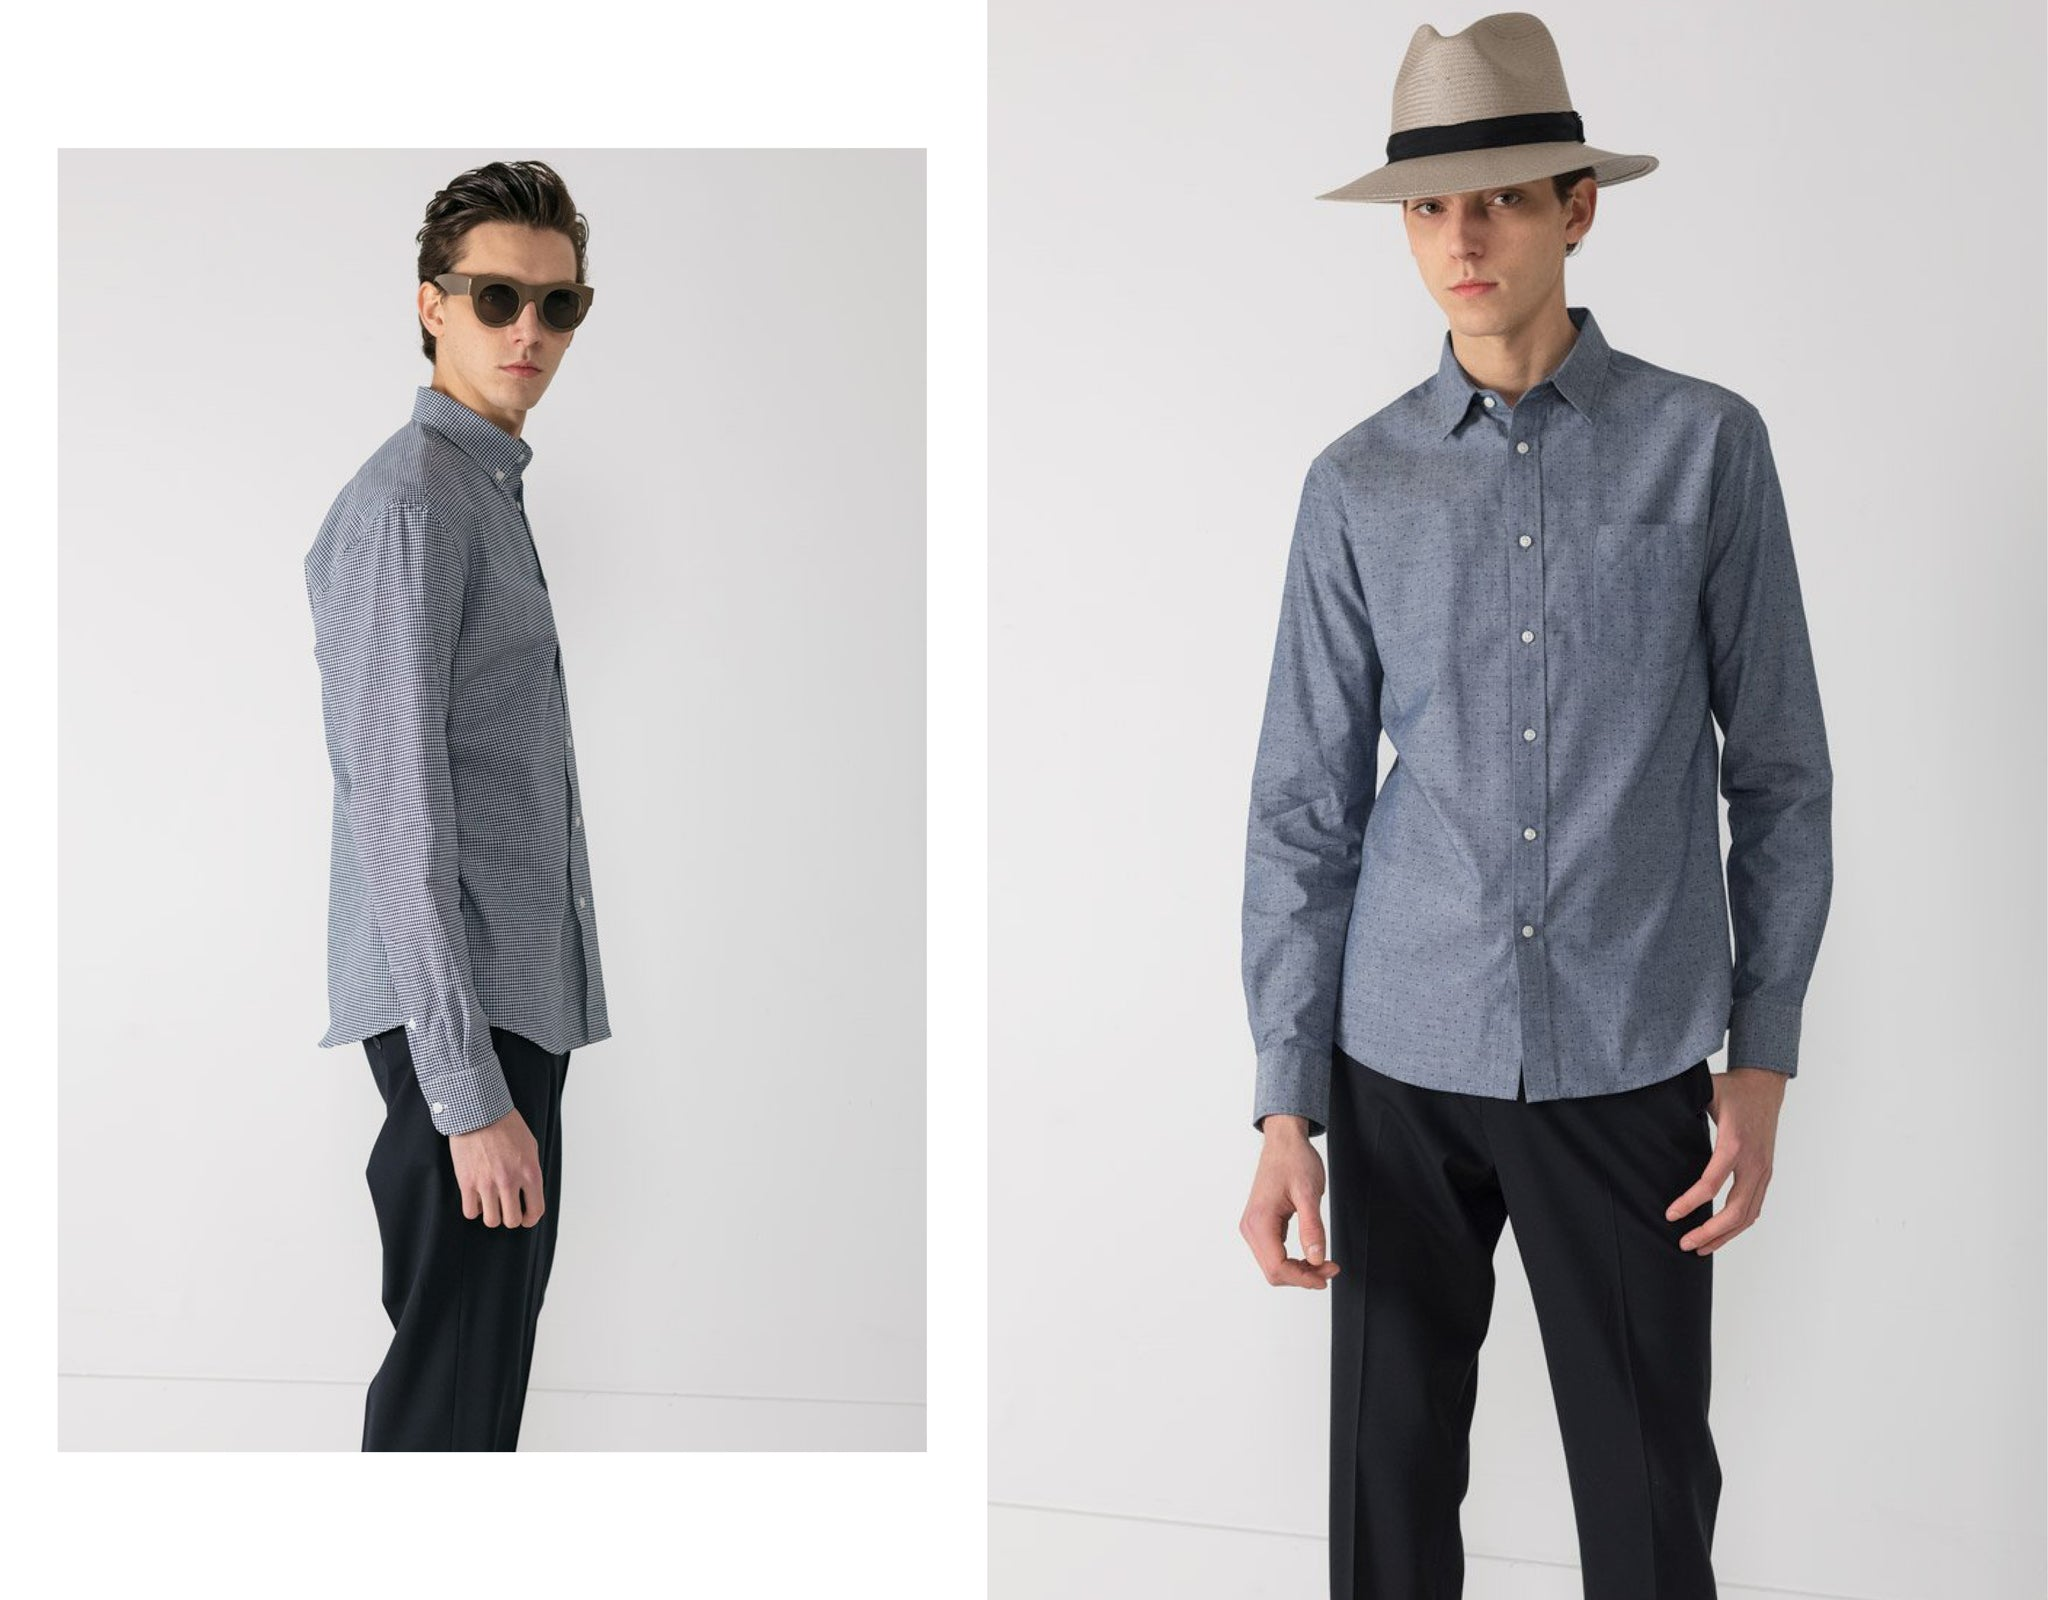 National Standards slim fitting long sleeve shirts on male model wearing glasses beside same in grey fedora